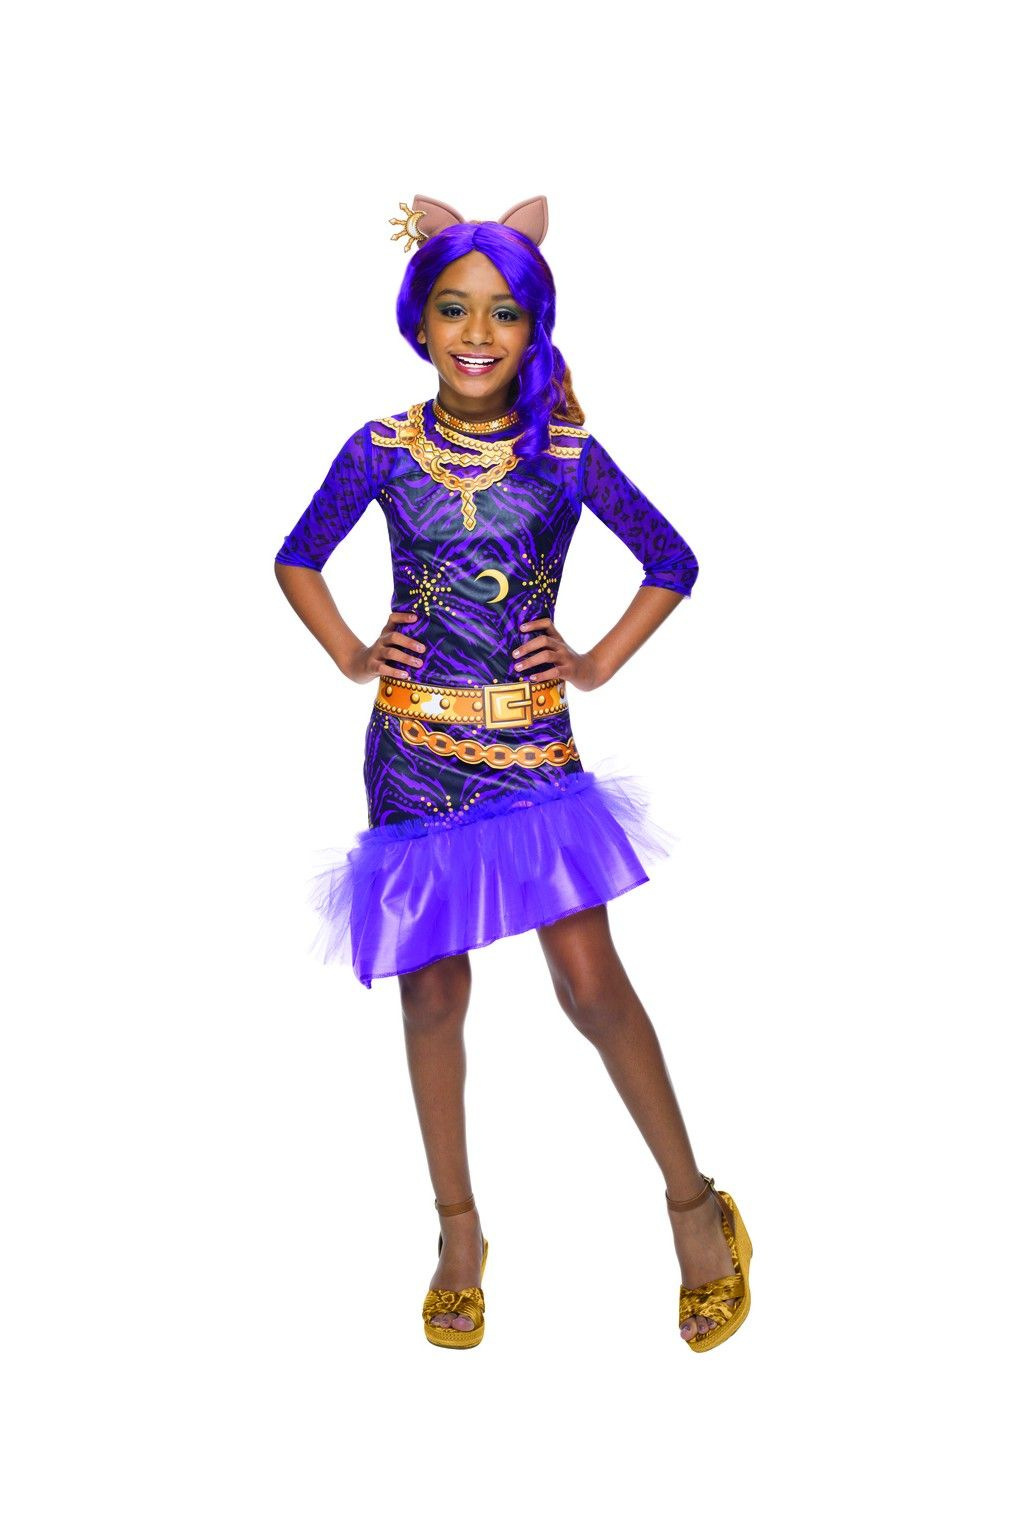 find great deals on costumes accessories and party supplies like the black carpet clawdeen wolf girls costume kids costumes at official princess - Wolf Halloween Costume Kids